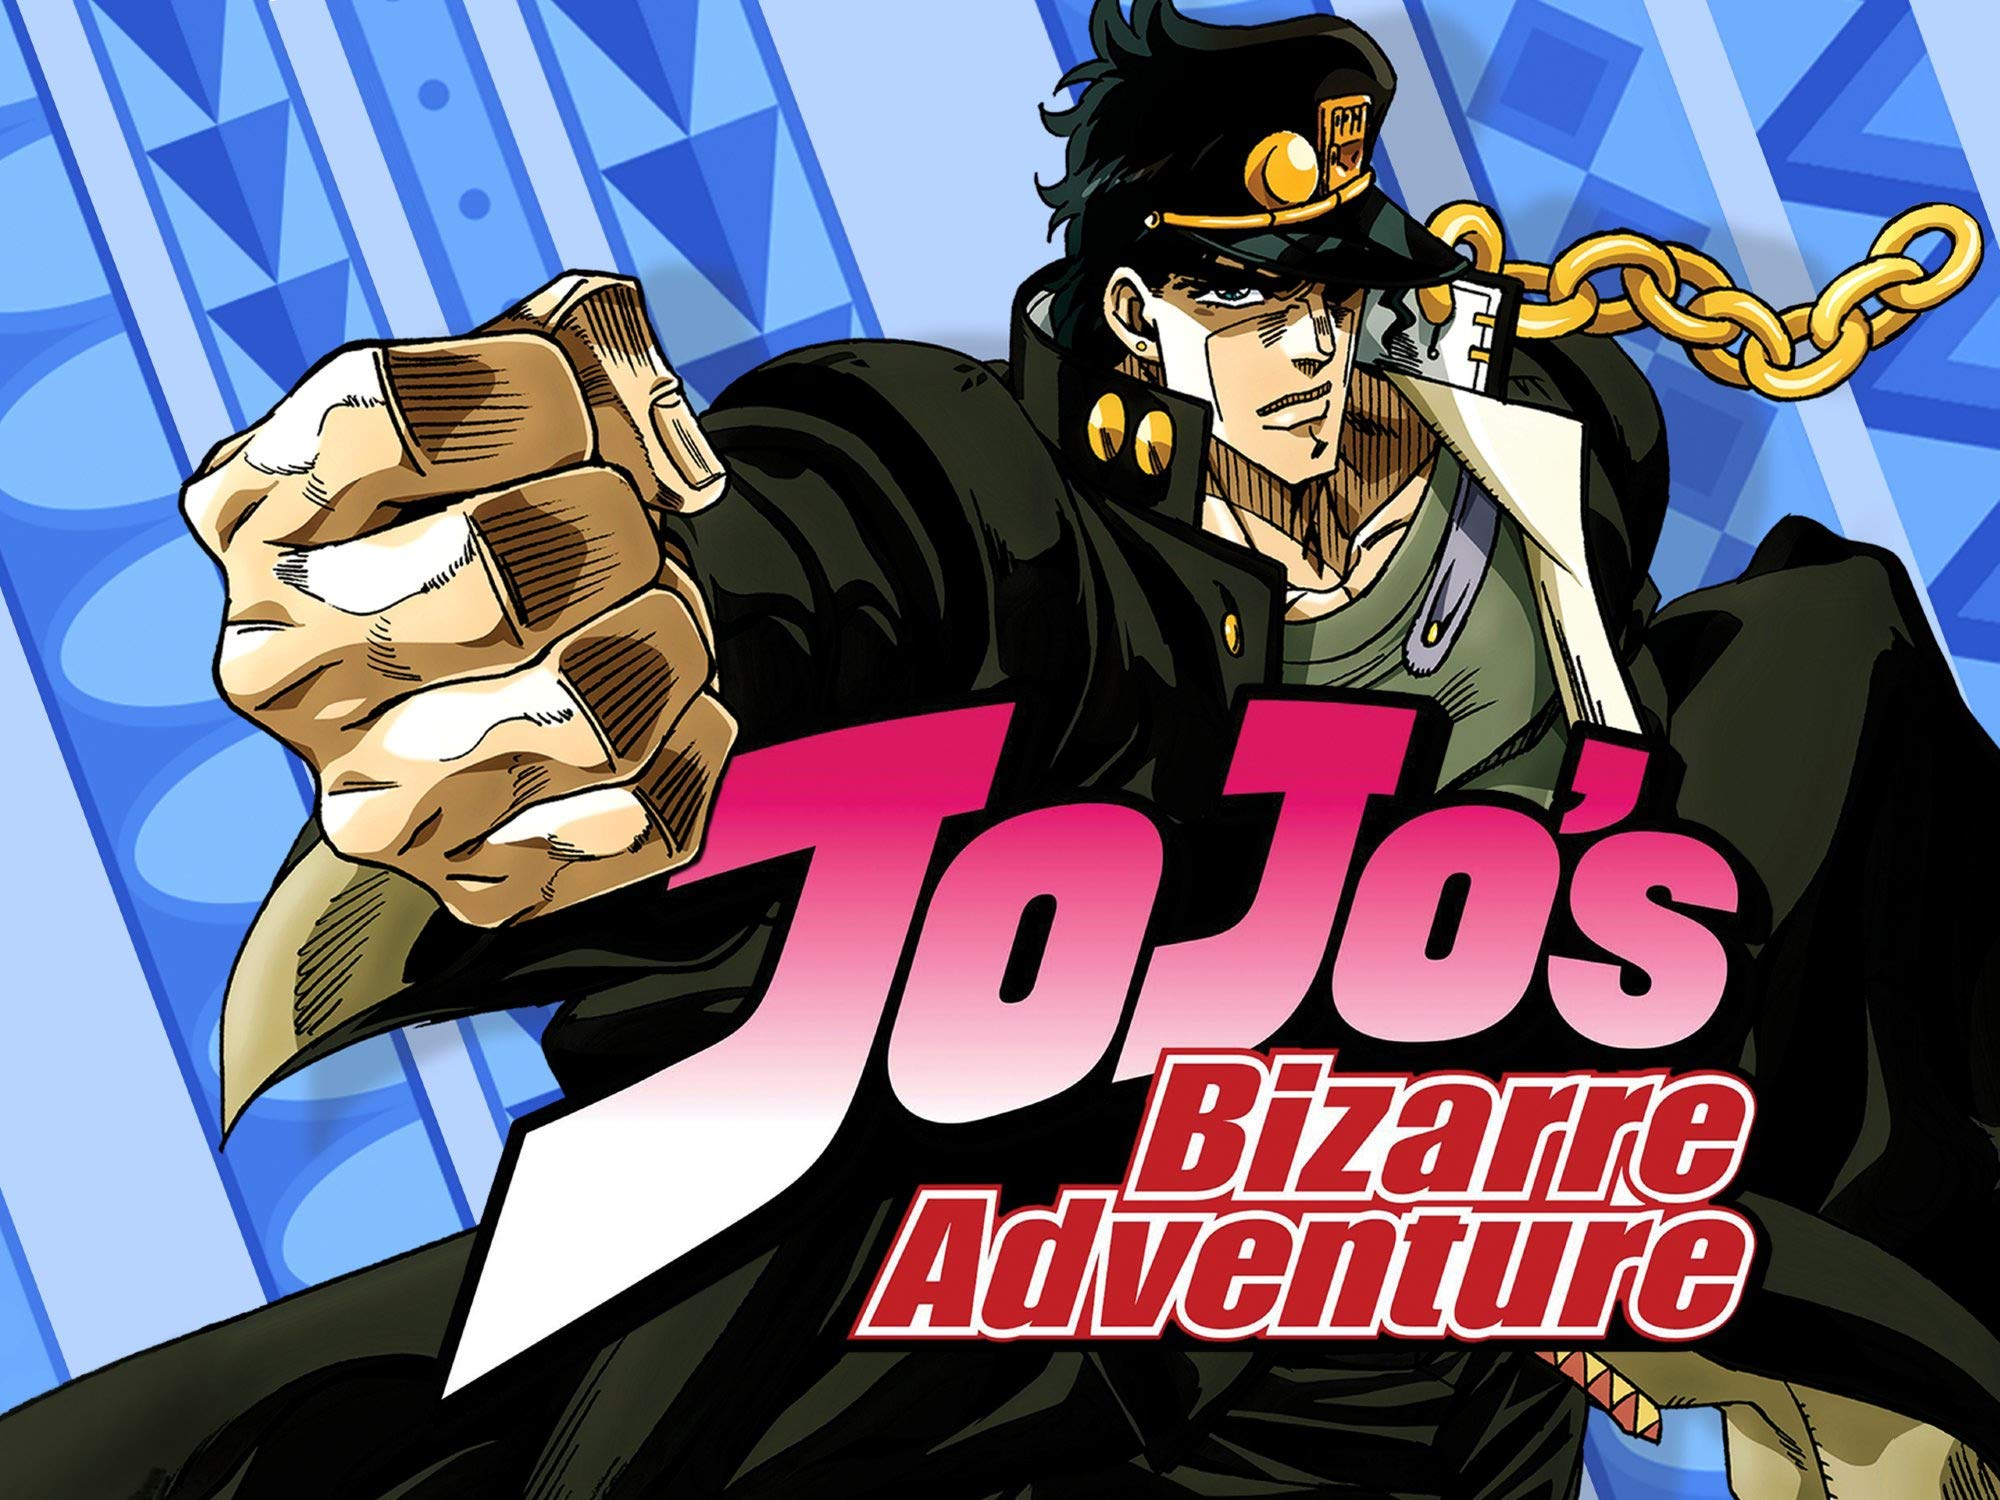 What's Jojo's Bizarre Adventure is really about?